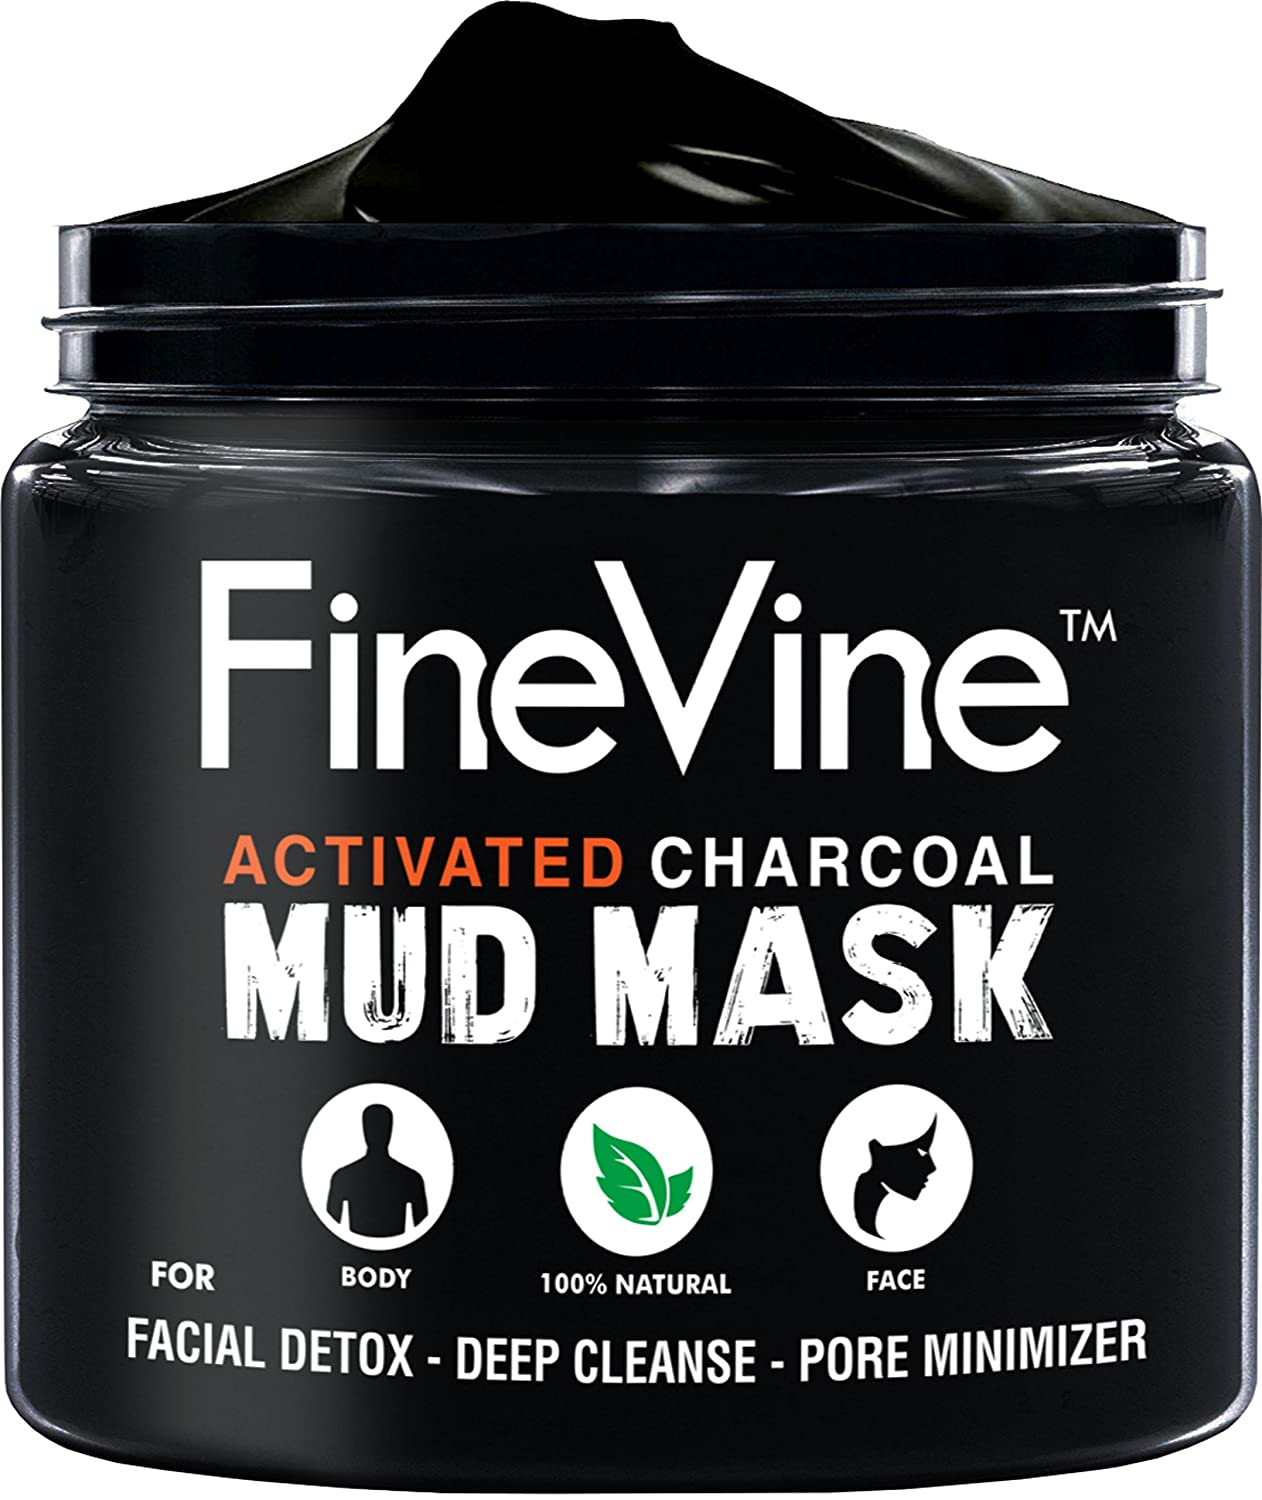 Activated Charcoal Mud Mask - Made in USA - For Deep Cleansing & Exfoliation, Pore Minimizer & Reduces Wrinkles, Acne Scars, Blackhead Remover & Anti Cellulite Treatment, Face Mask & Facial Cleanser. FineVine Organics